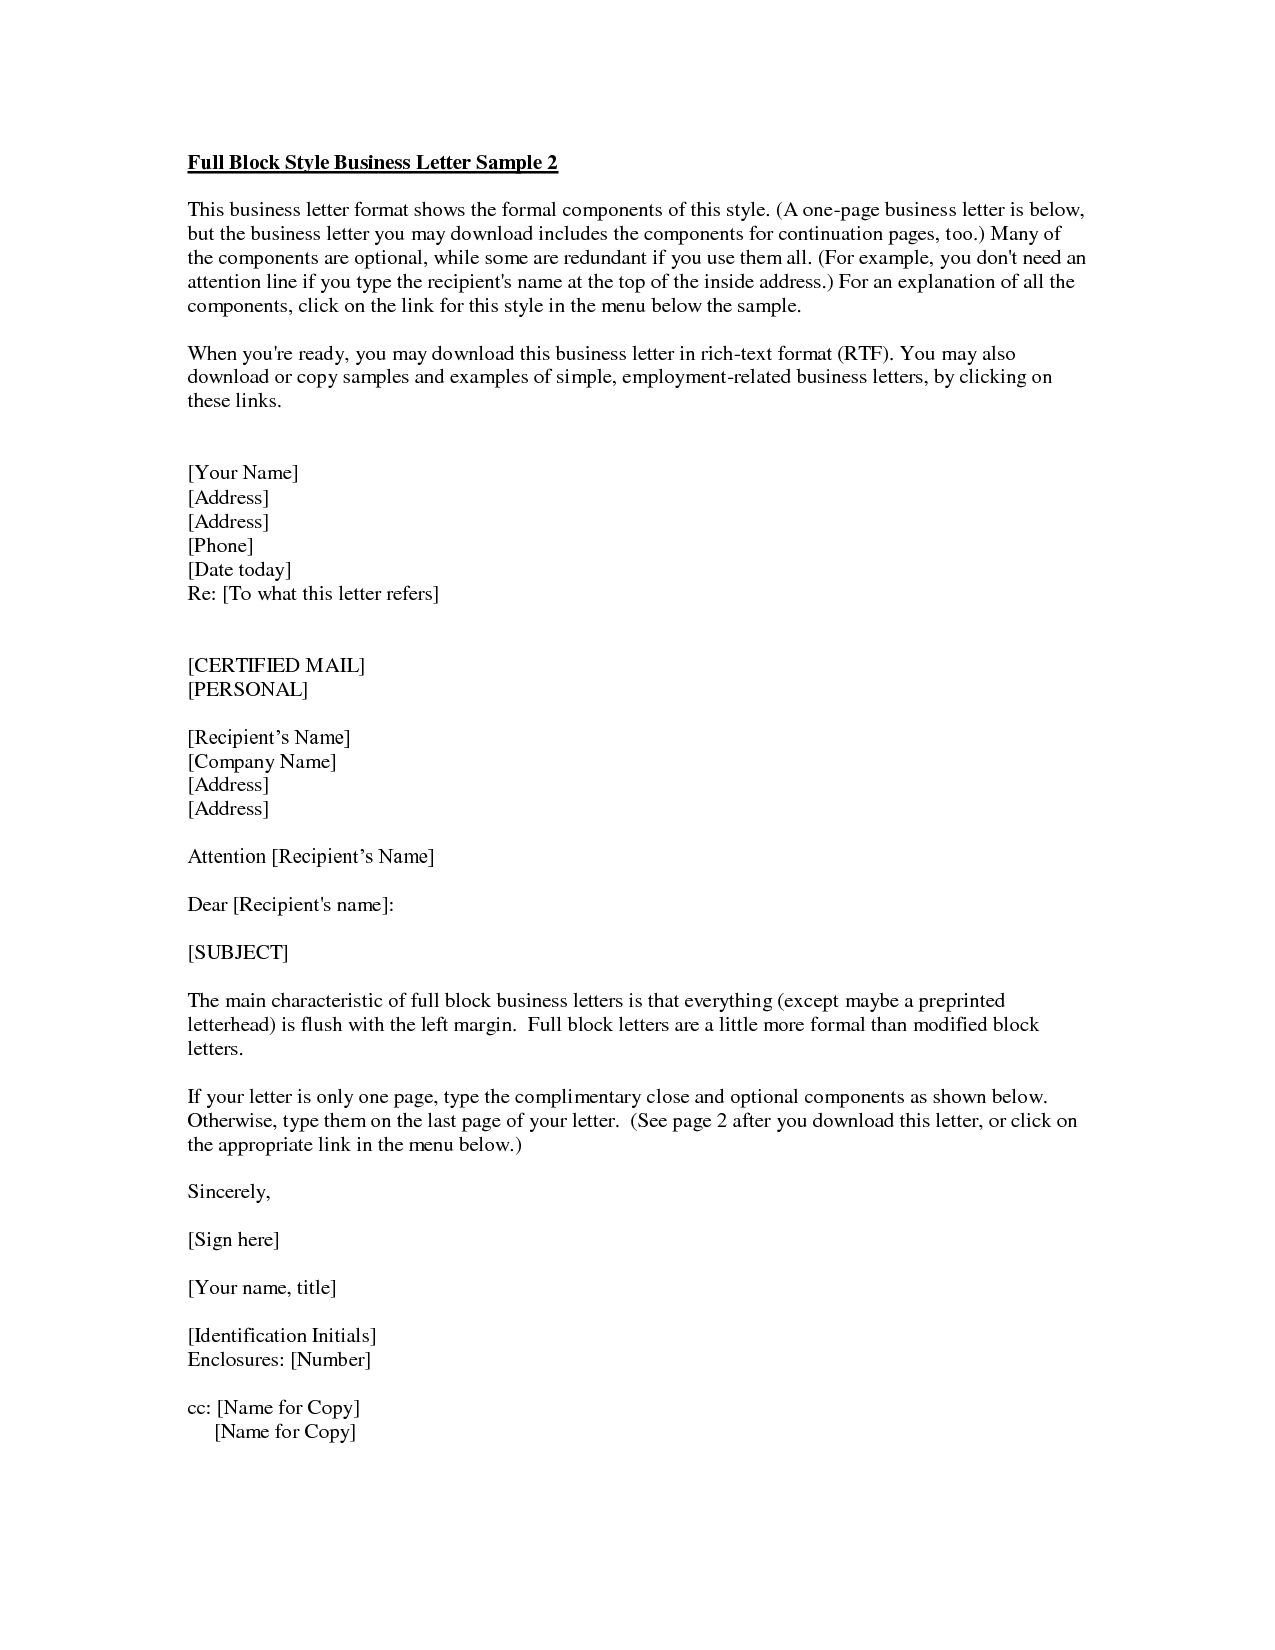 Business Letter Format With Cc And Enclosures Resume Pics And